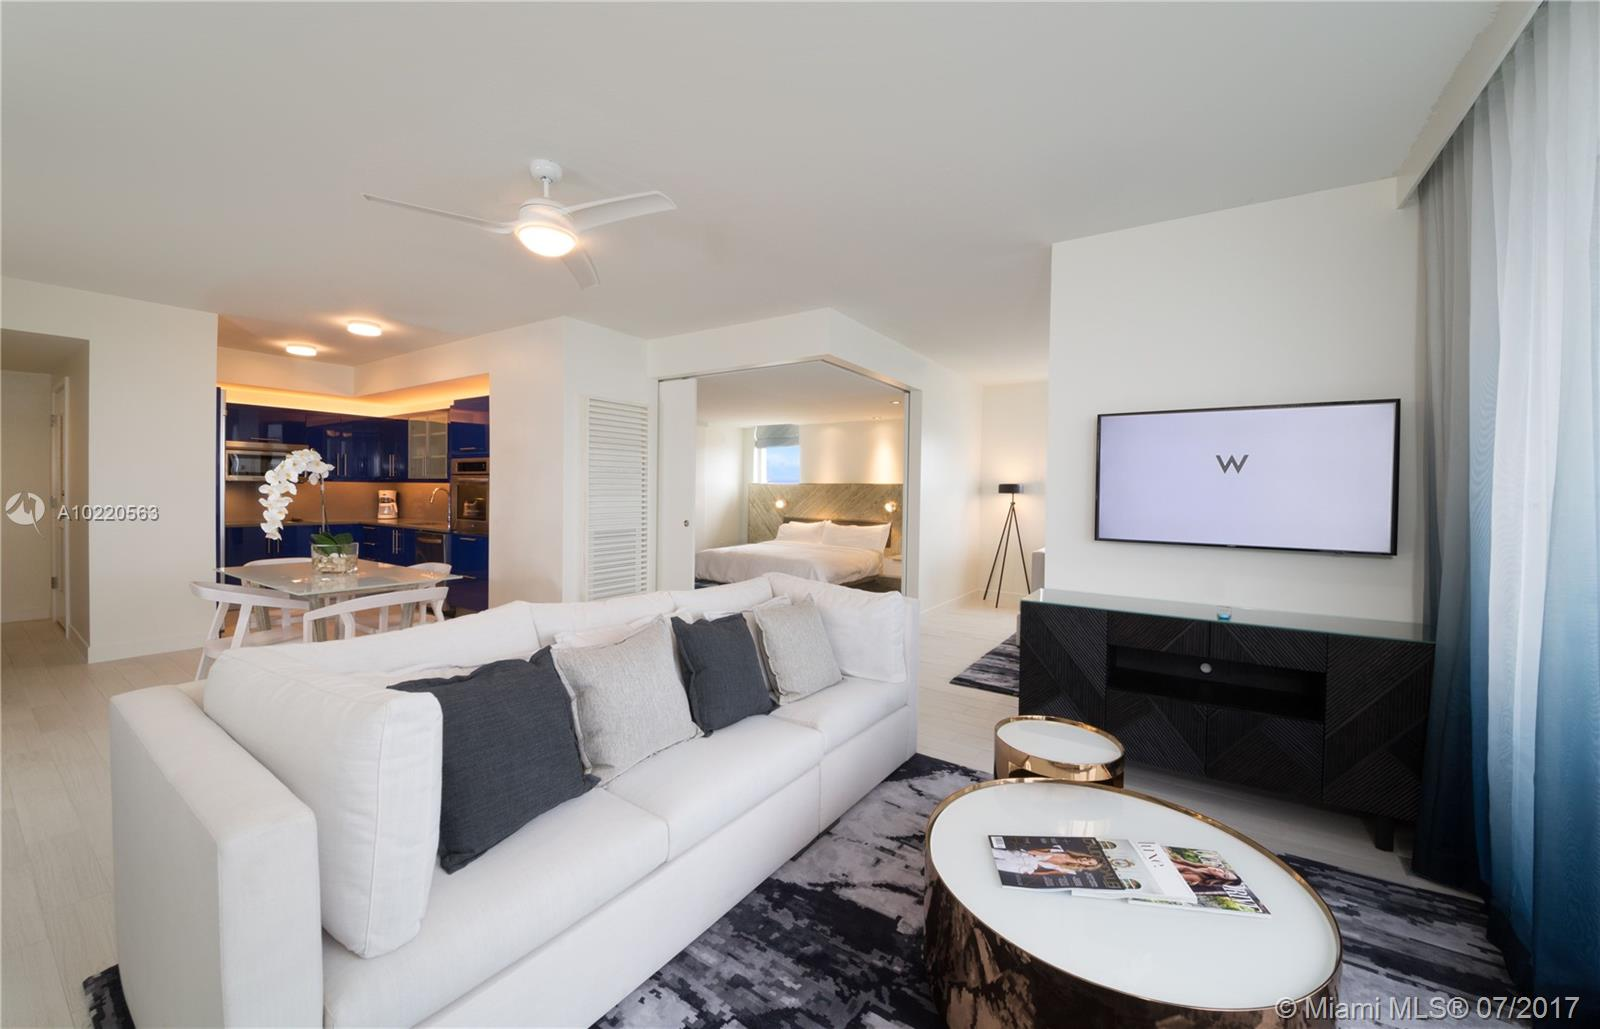 W Fort Lauderdale #1202 - 01 - photo